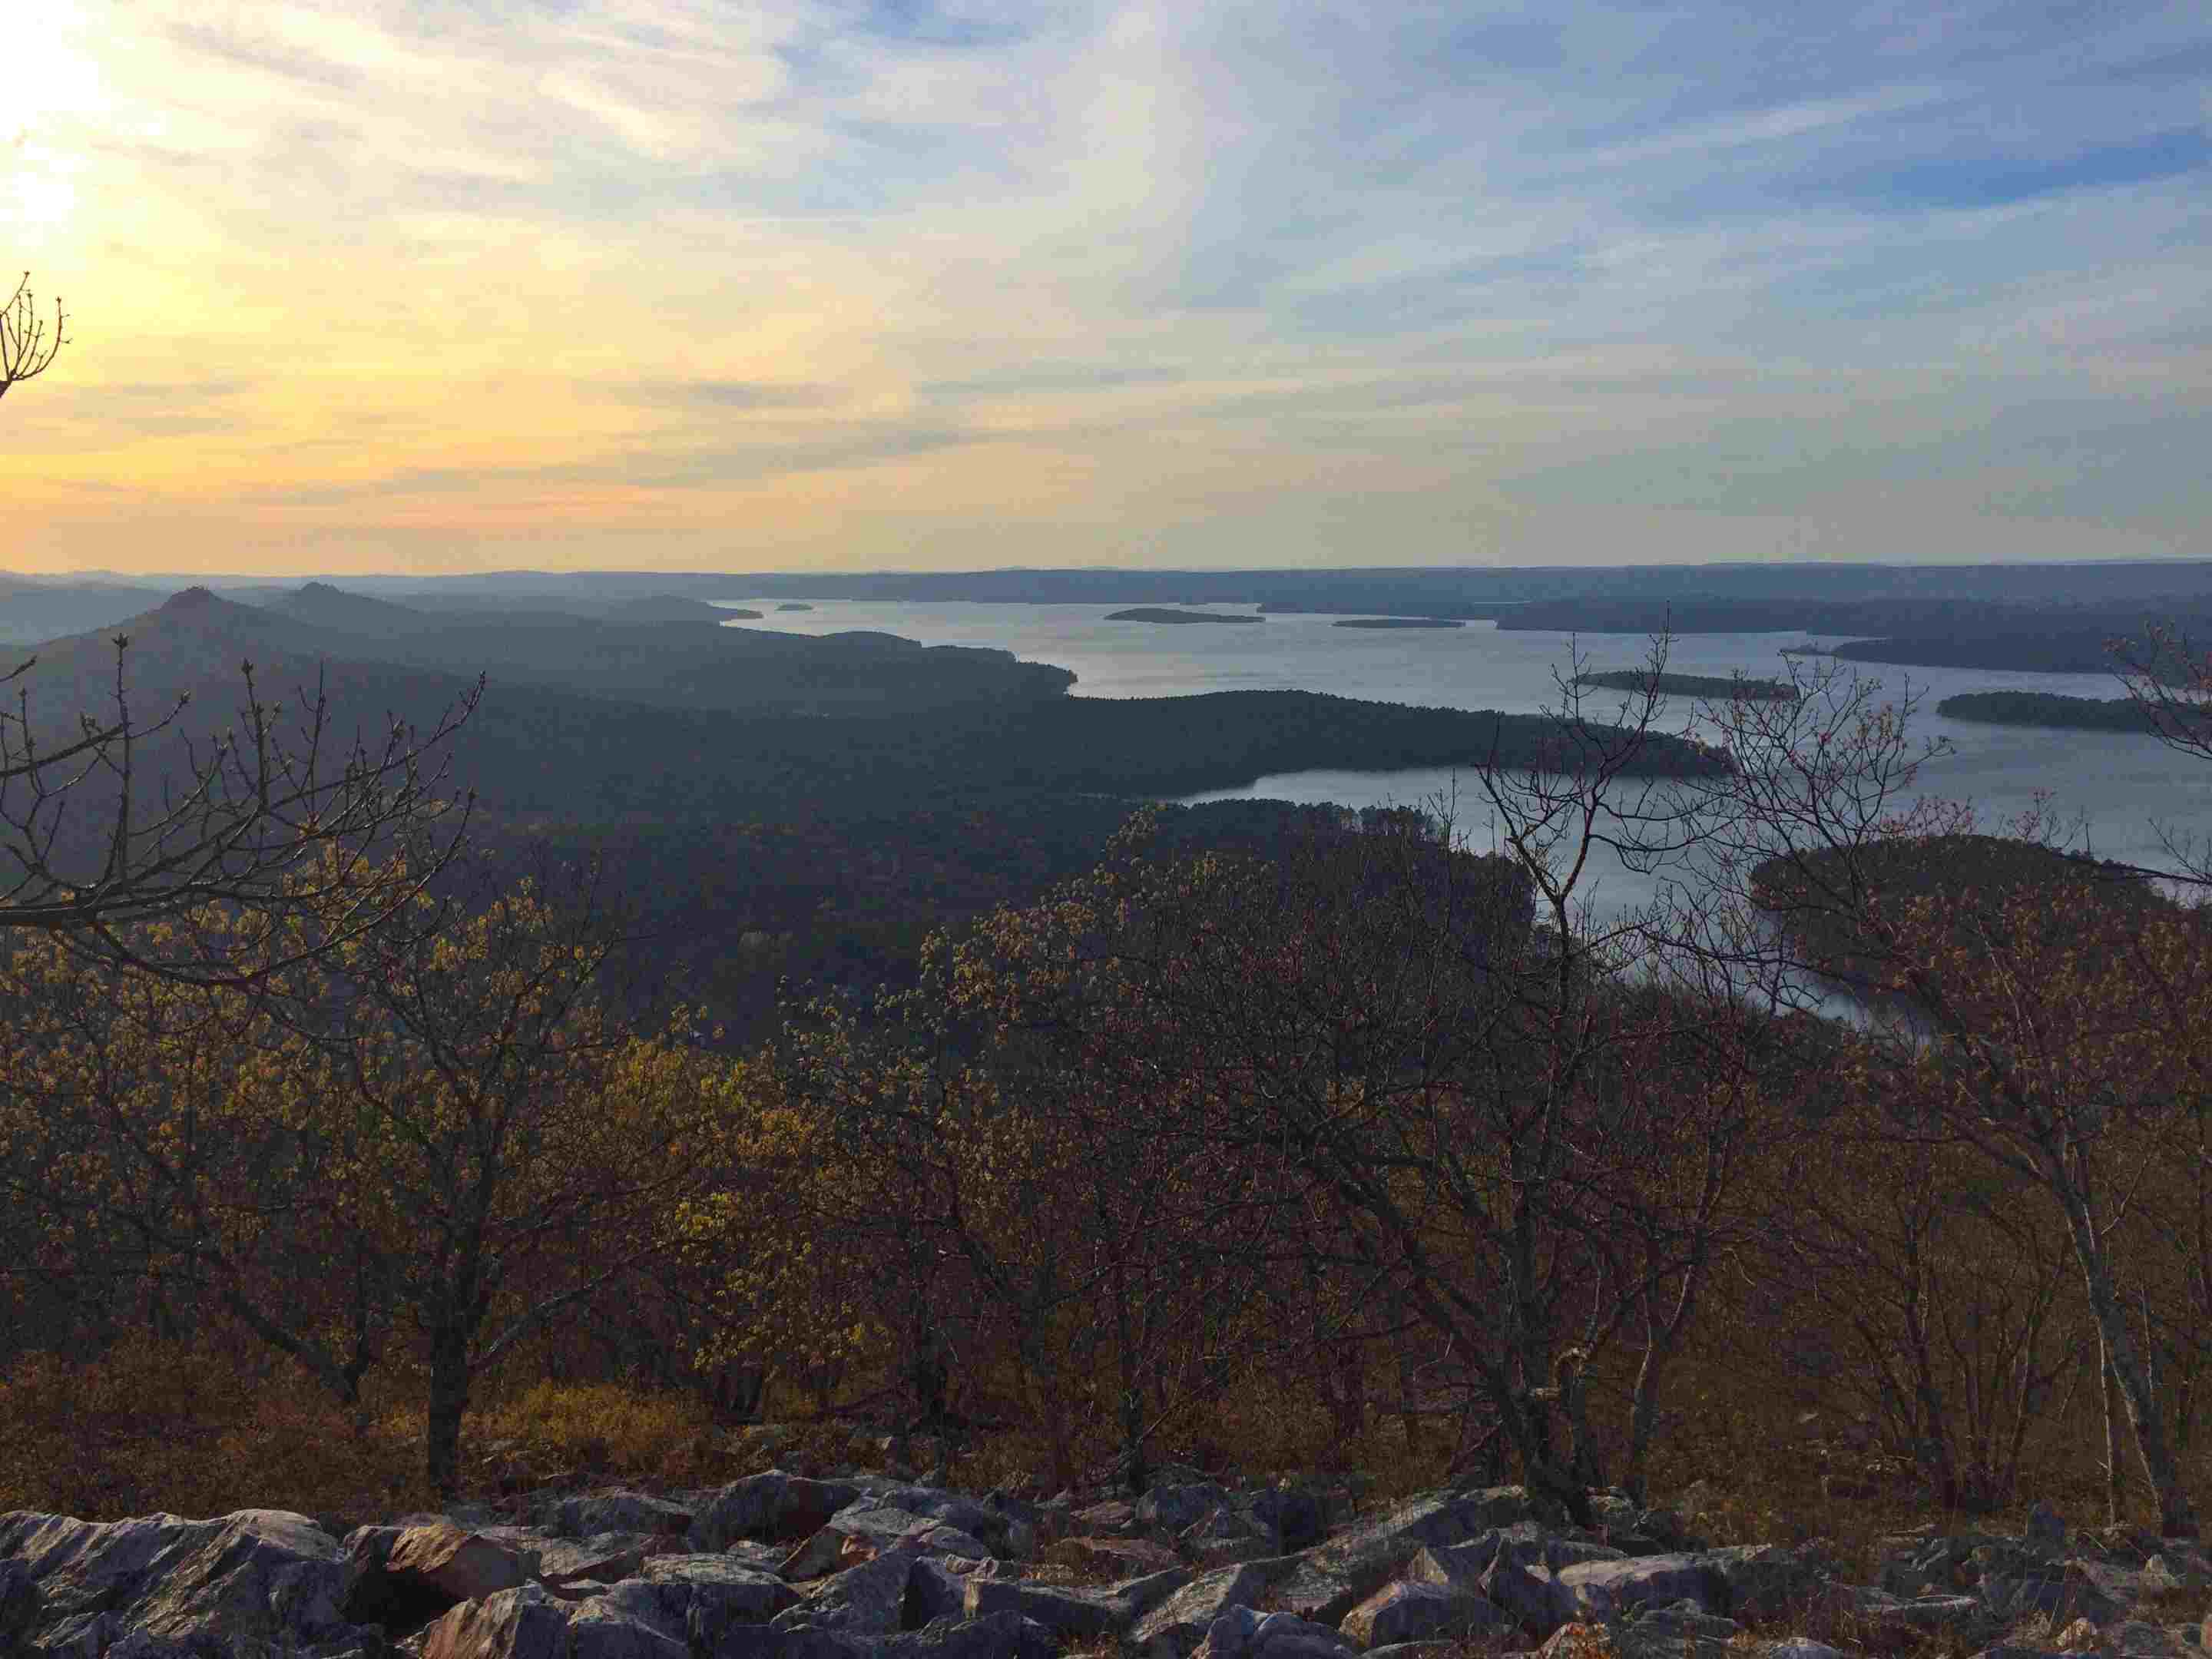 View of Maumelle Park from Pinnacle Mountain